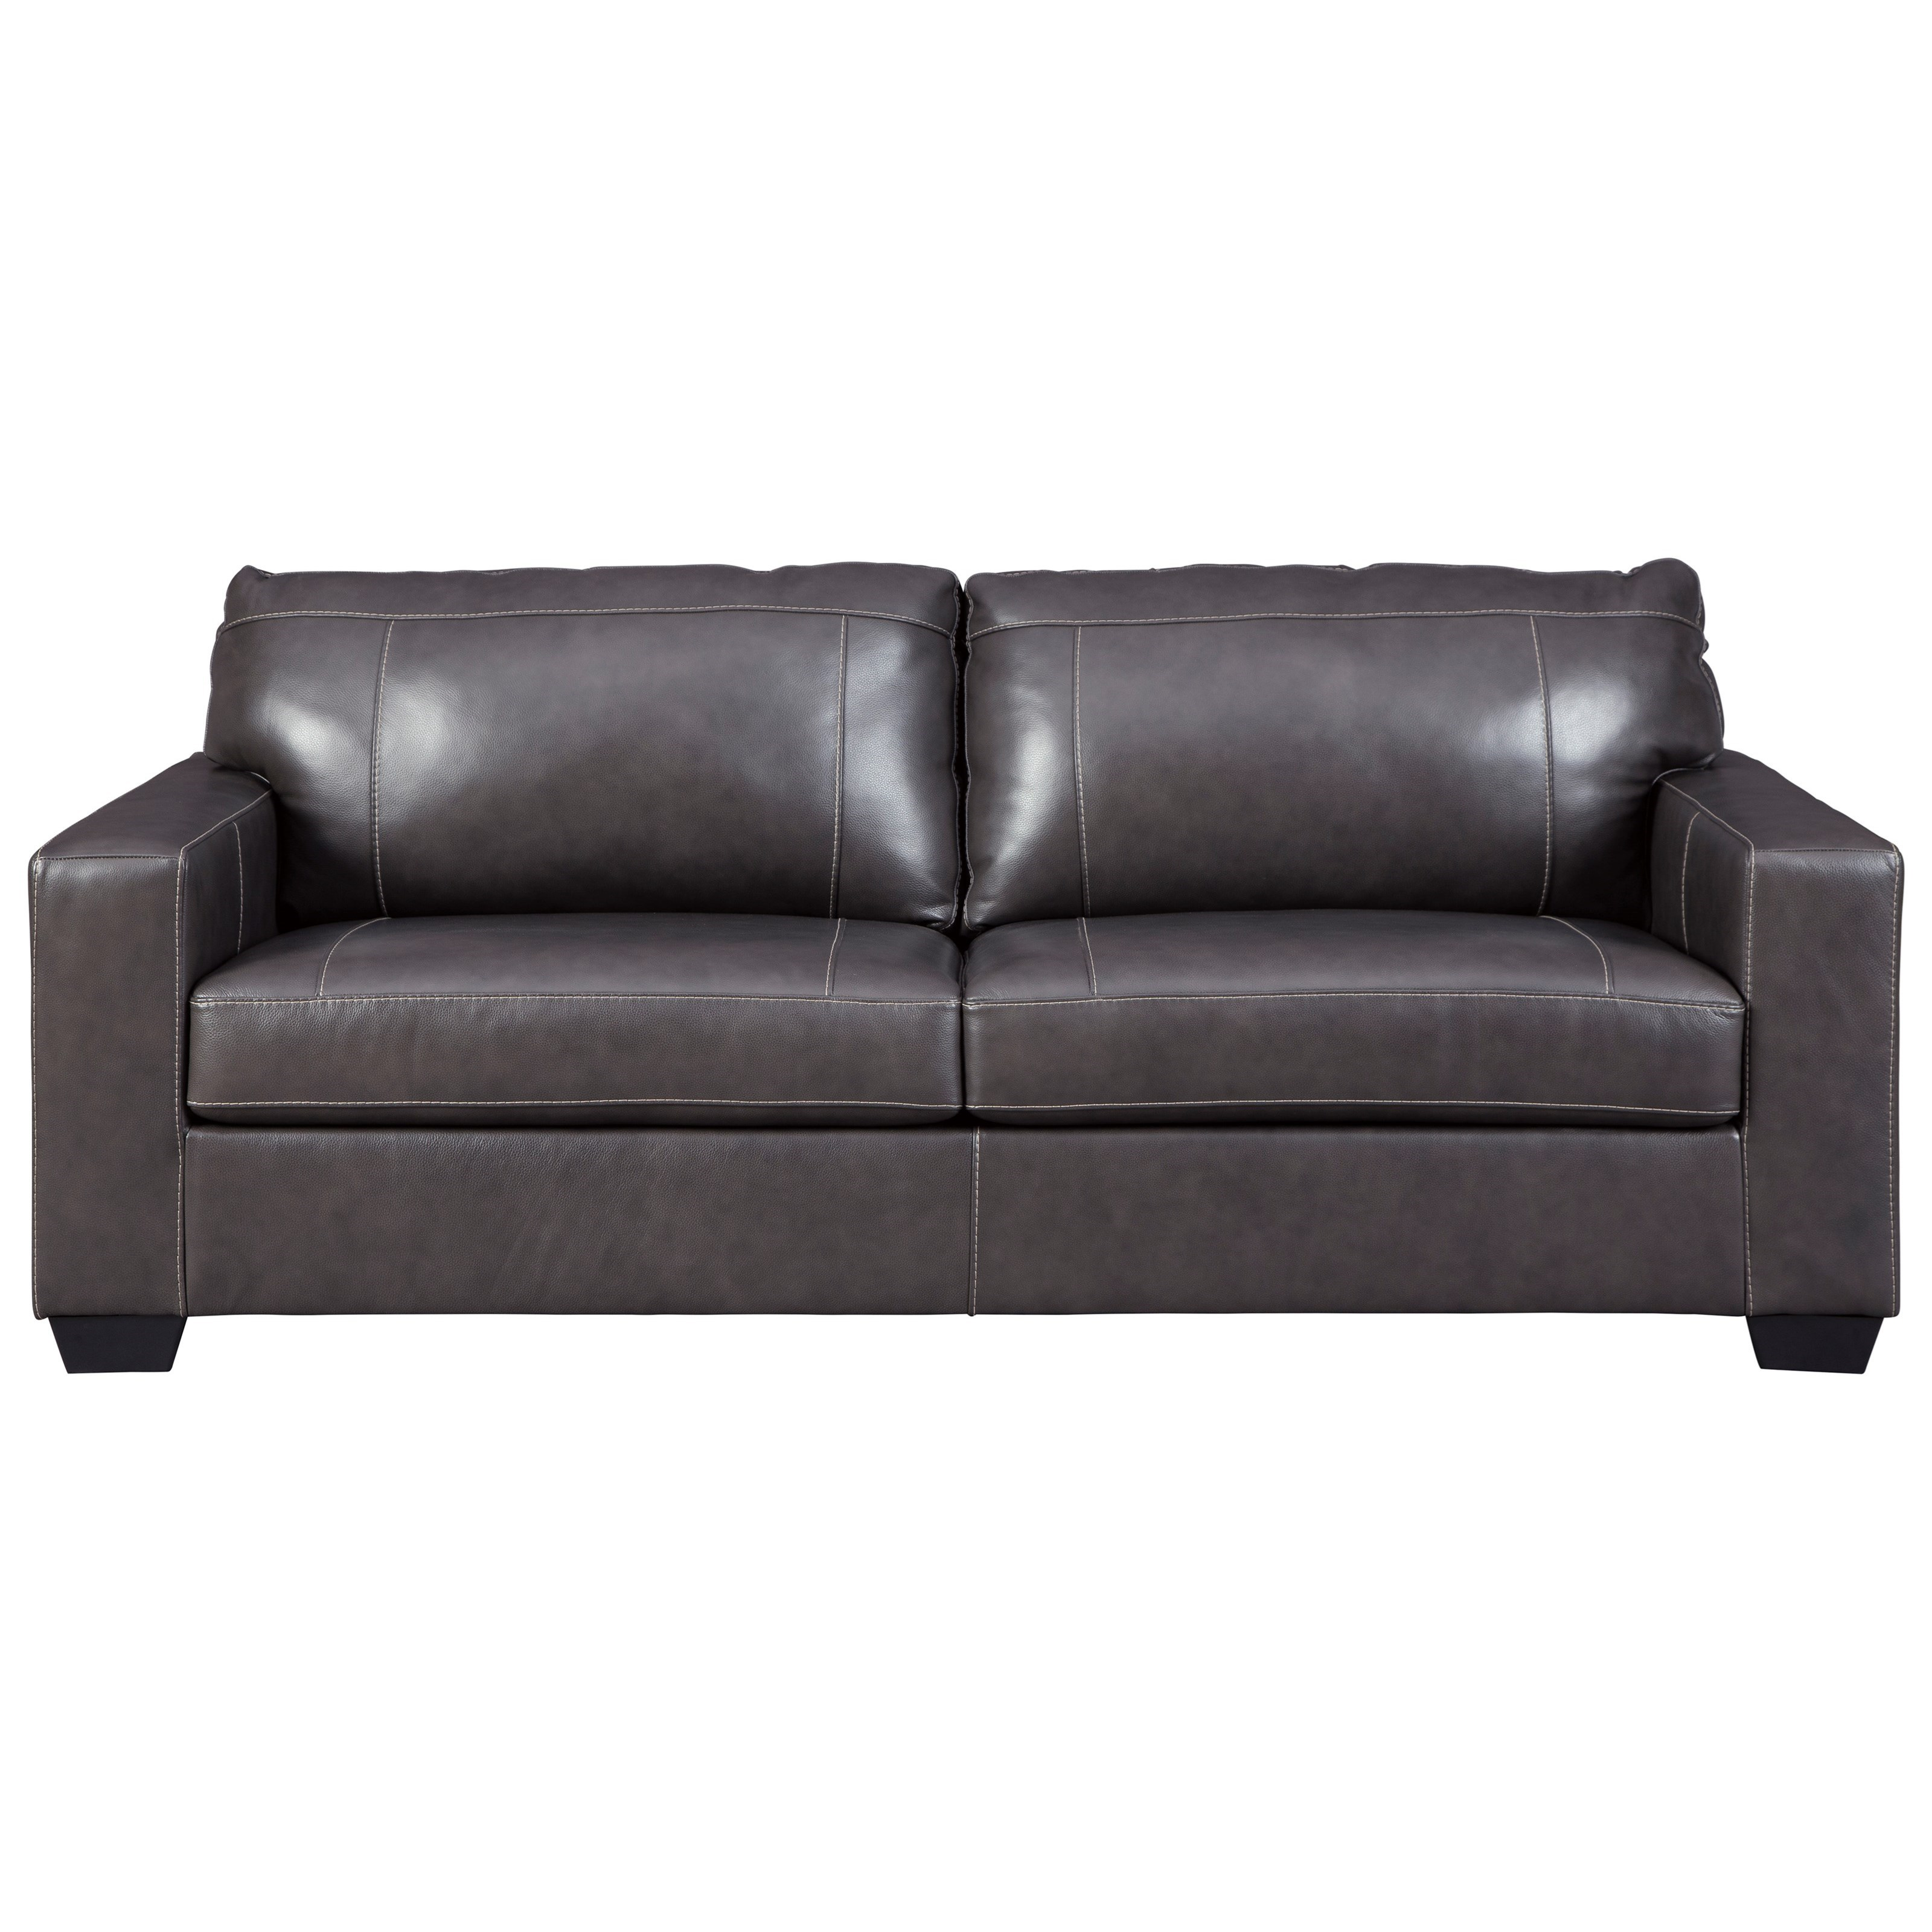 Morelos Queen Sofa Sleeper by Signature Design by Ashley at HomeWorld Furniture